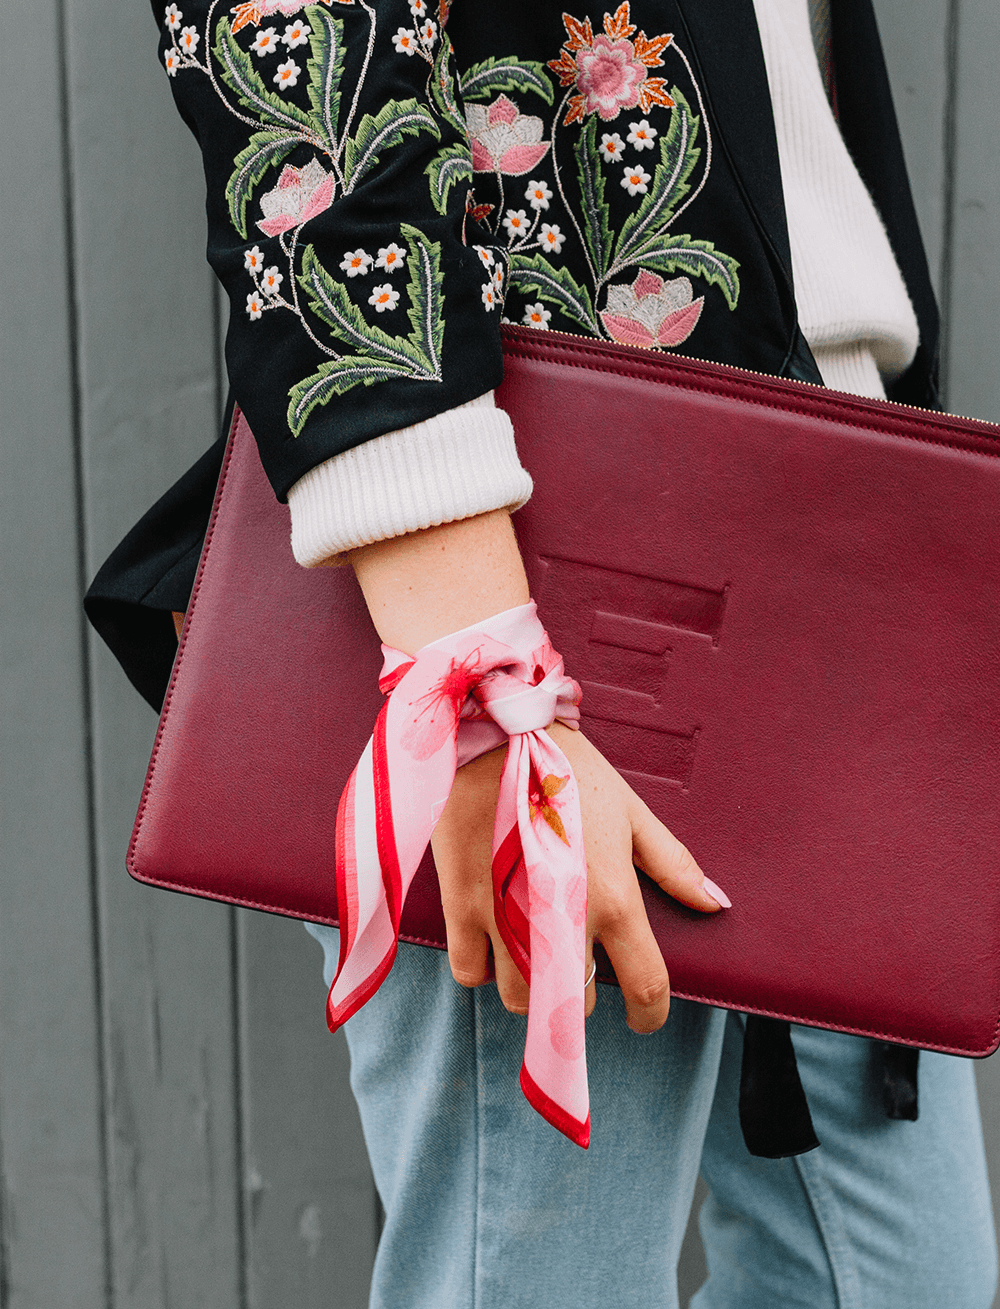 Lio Mara Pink Blossom Floral Silk Tencel Sustainable Scarf UK Tied Round Wrist With London Velvet Leather Laptop Case